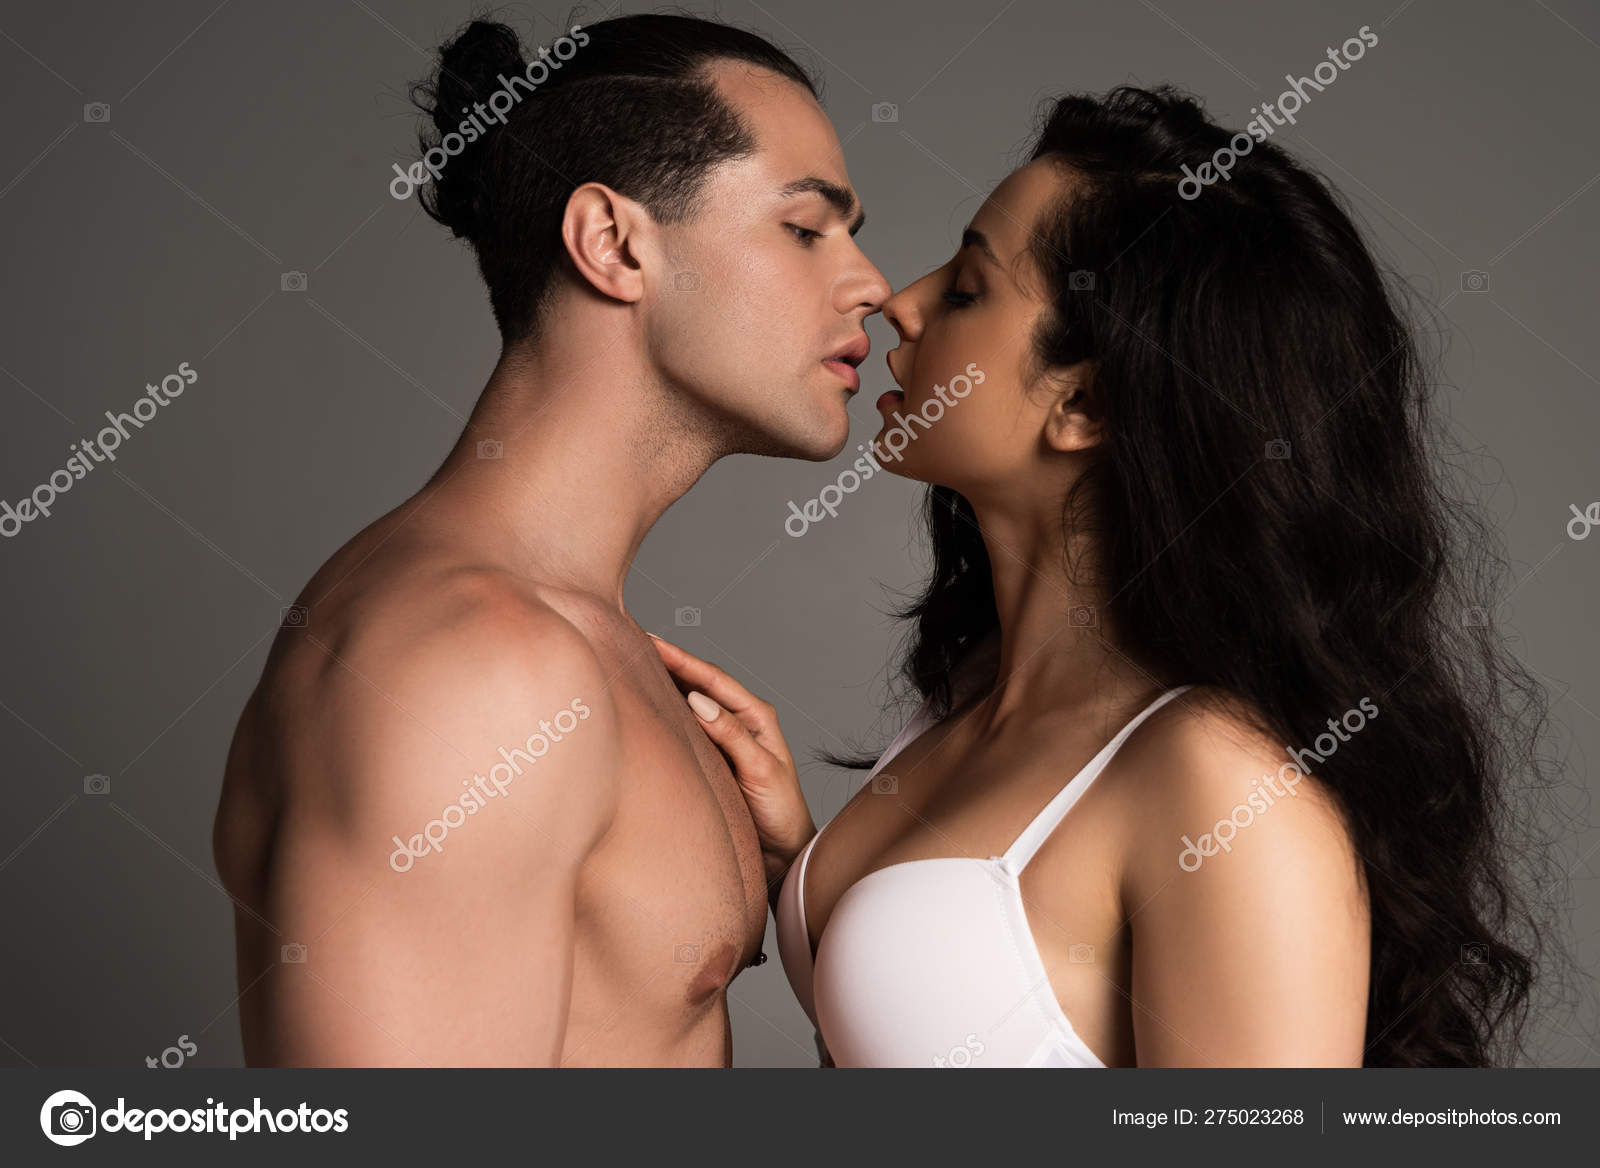 Sexy not men making out